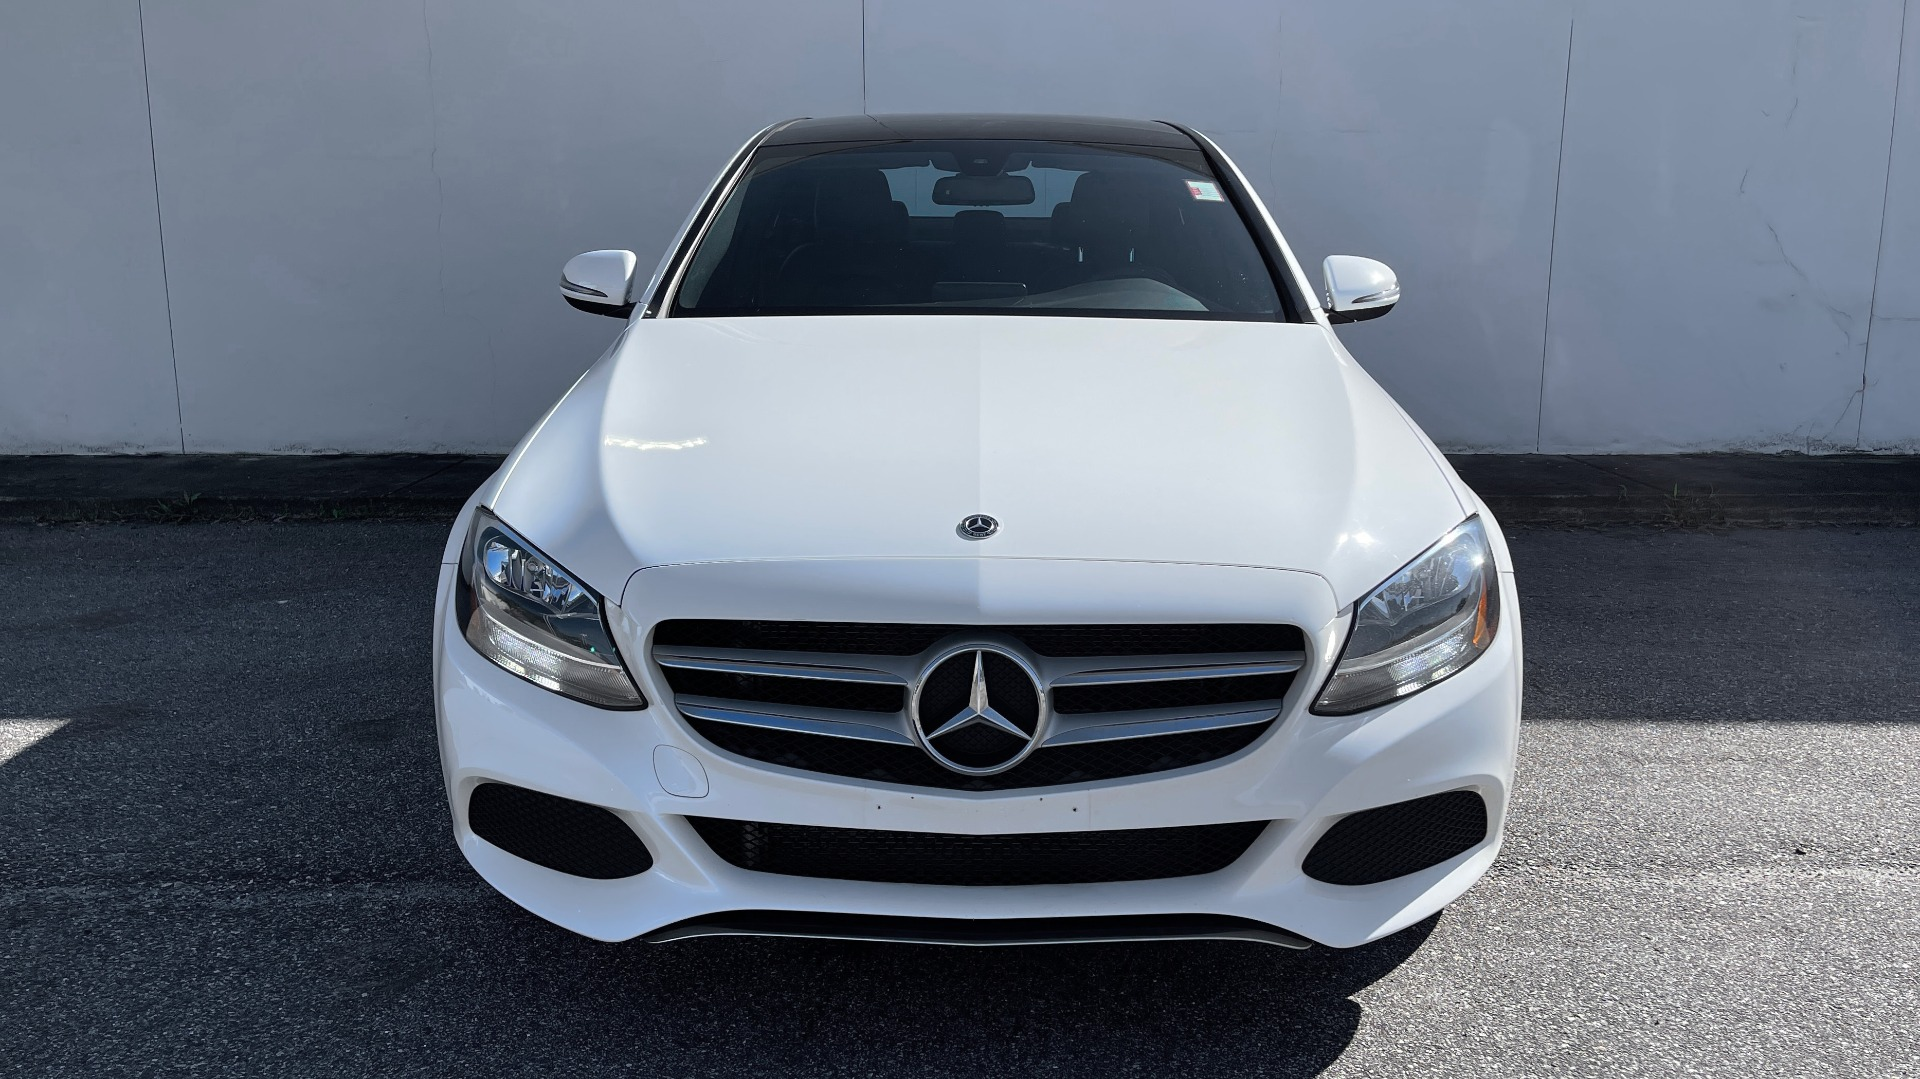 Used 2018 Mercedes-Benz C-CLASS C 300 4MATIC PREMIUM / SMARTPHONE INTEG / PANO-ROOF / REARVIEW for sale $30,995 at Formula Imports in Charlotte NC 28227 10